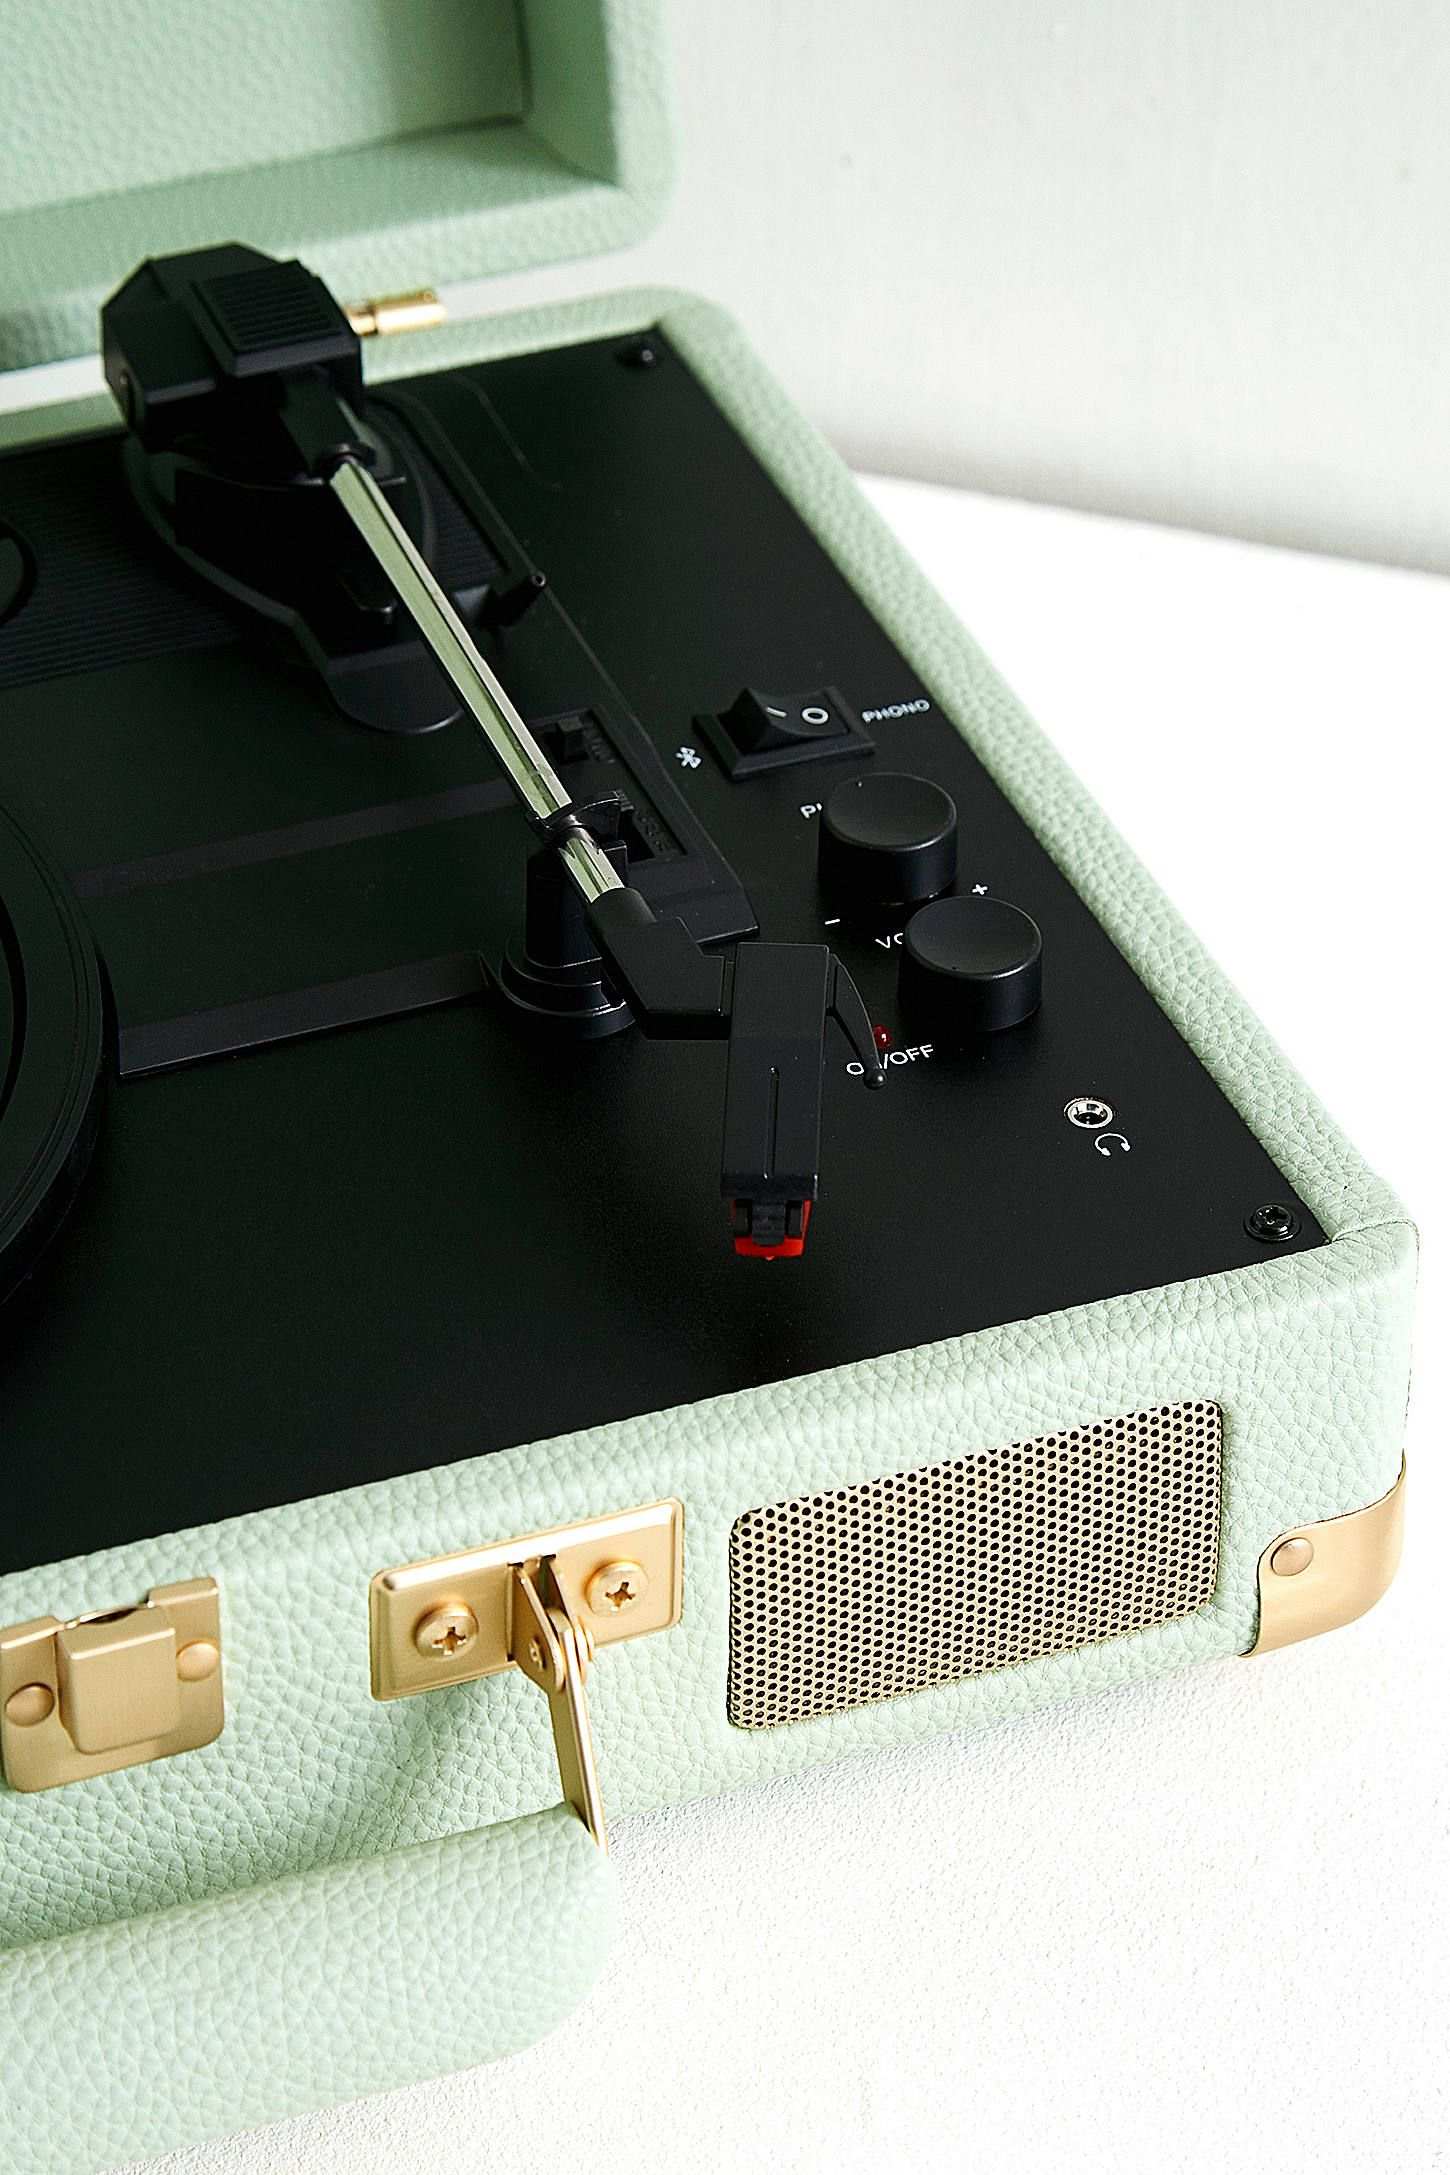 Crosley Cruiser Mint And Gold Bluetooth Vinyl Record Player Vinyl Record Player Crosley Cruiser Record Player